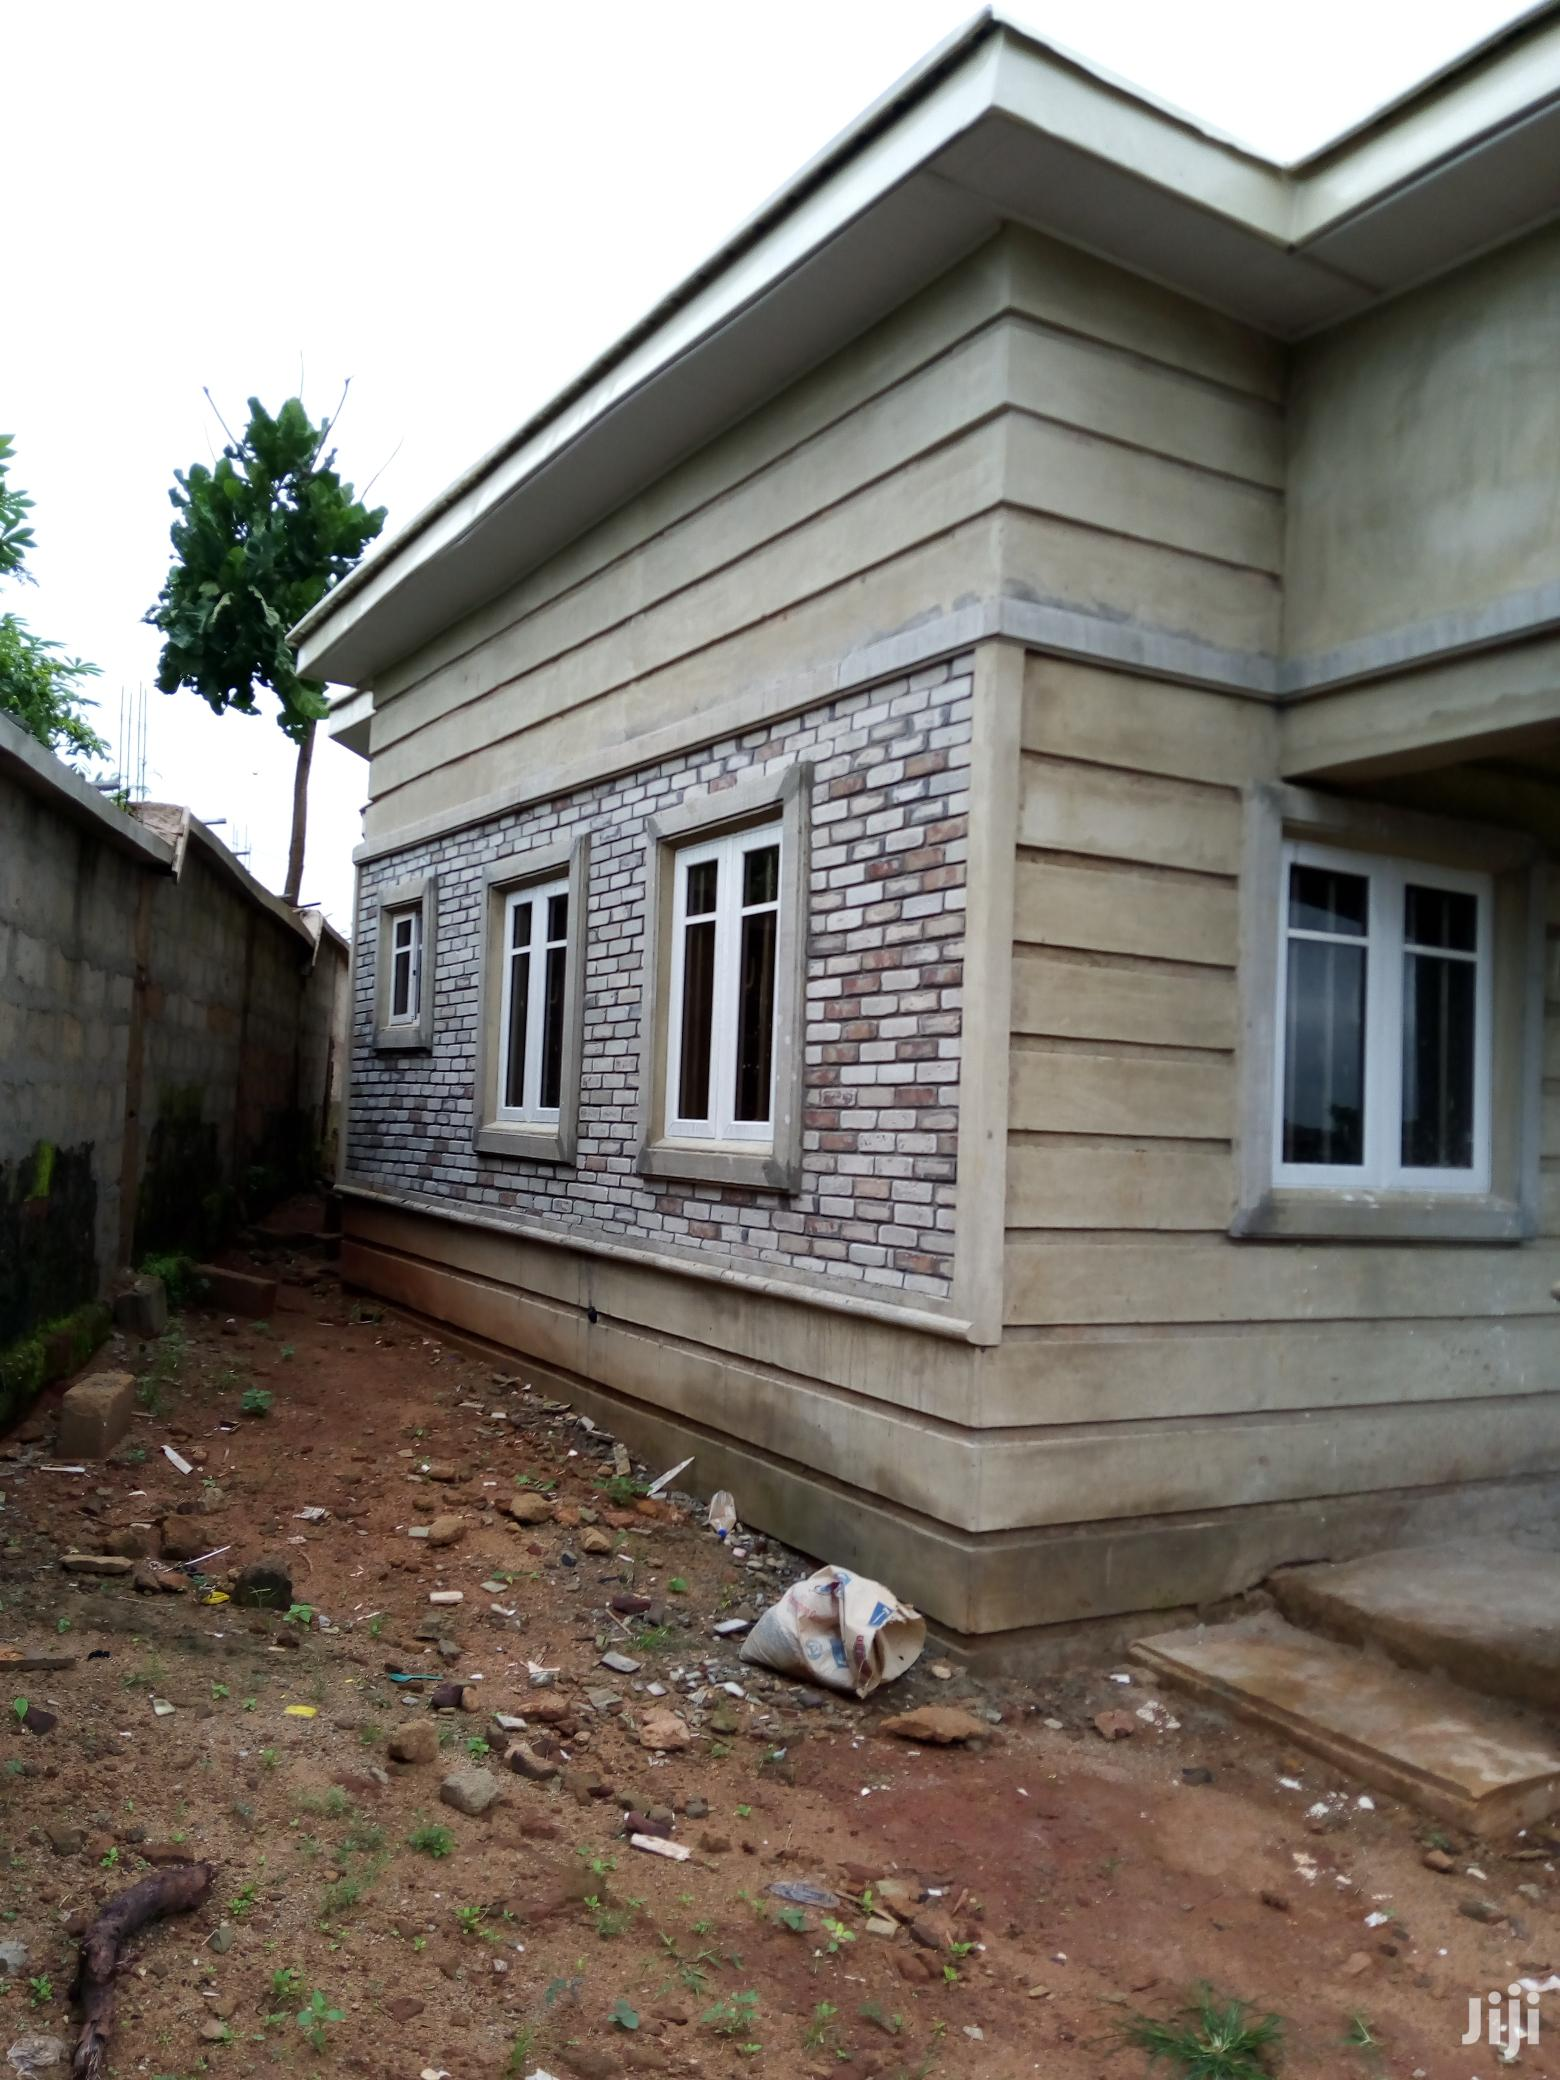 3 Bedroom and Parlor Bungalow by Ifite Road Awka | Houses & Apartments For Sale for sale in Awka, Anambra State, Nigeria